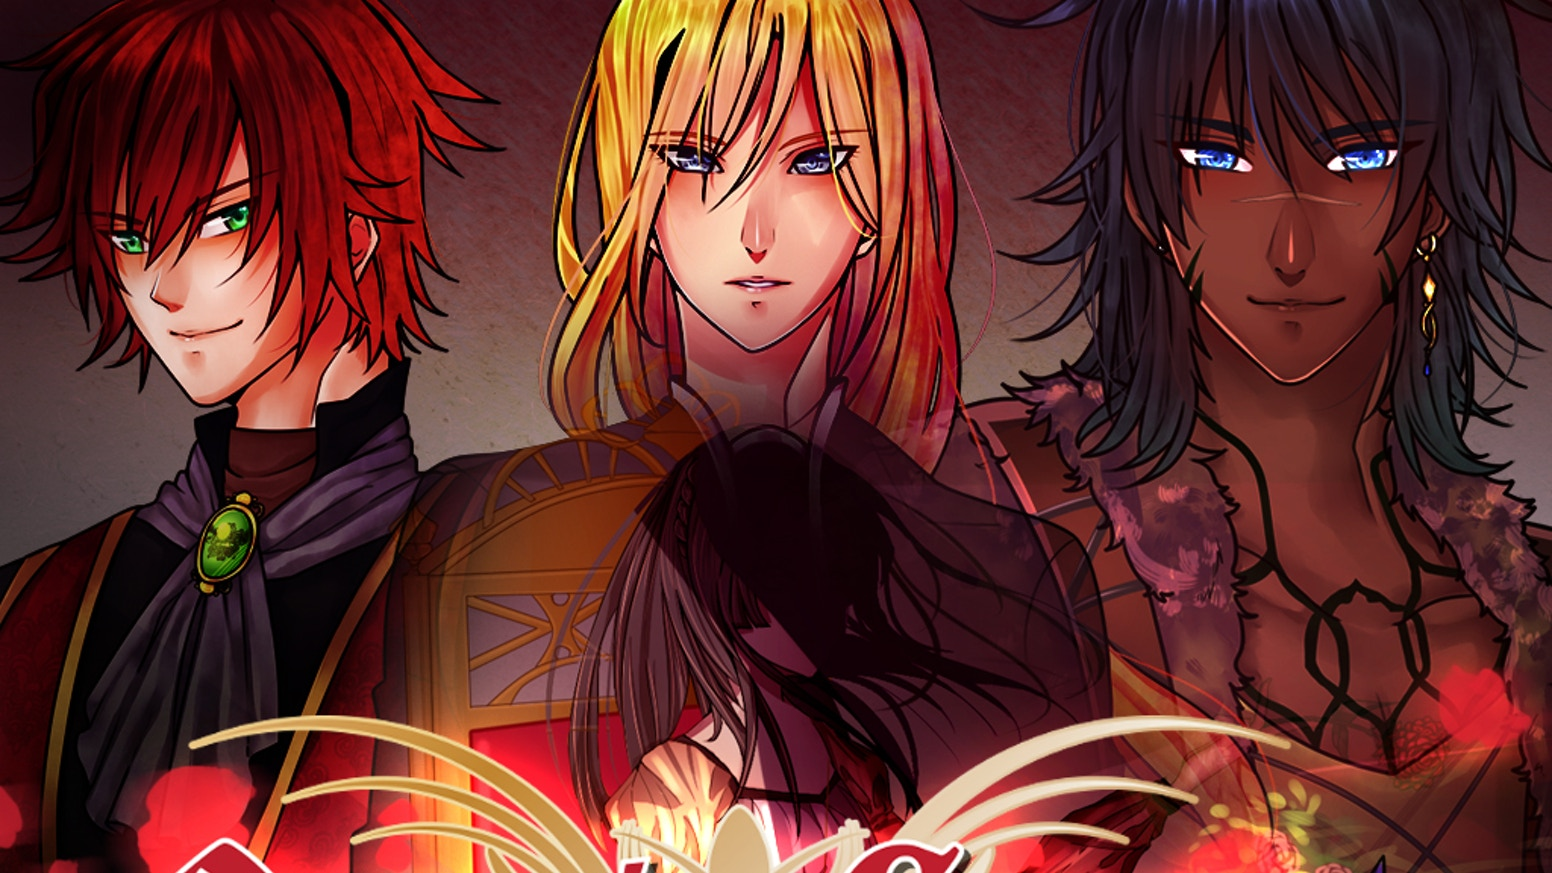 Romance, Medieval Fantasy, and Drama come together in this immersive visual novel / otome game!